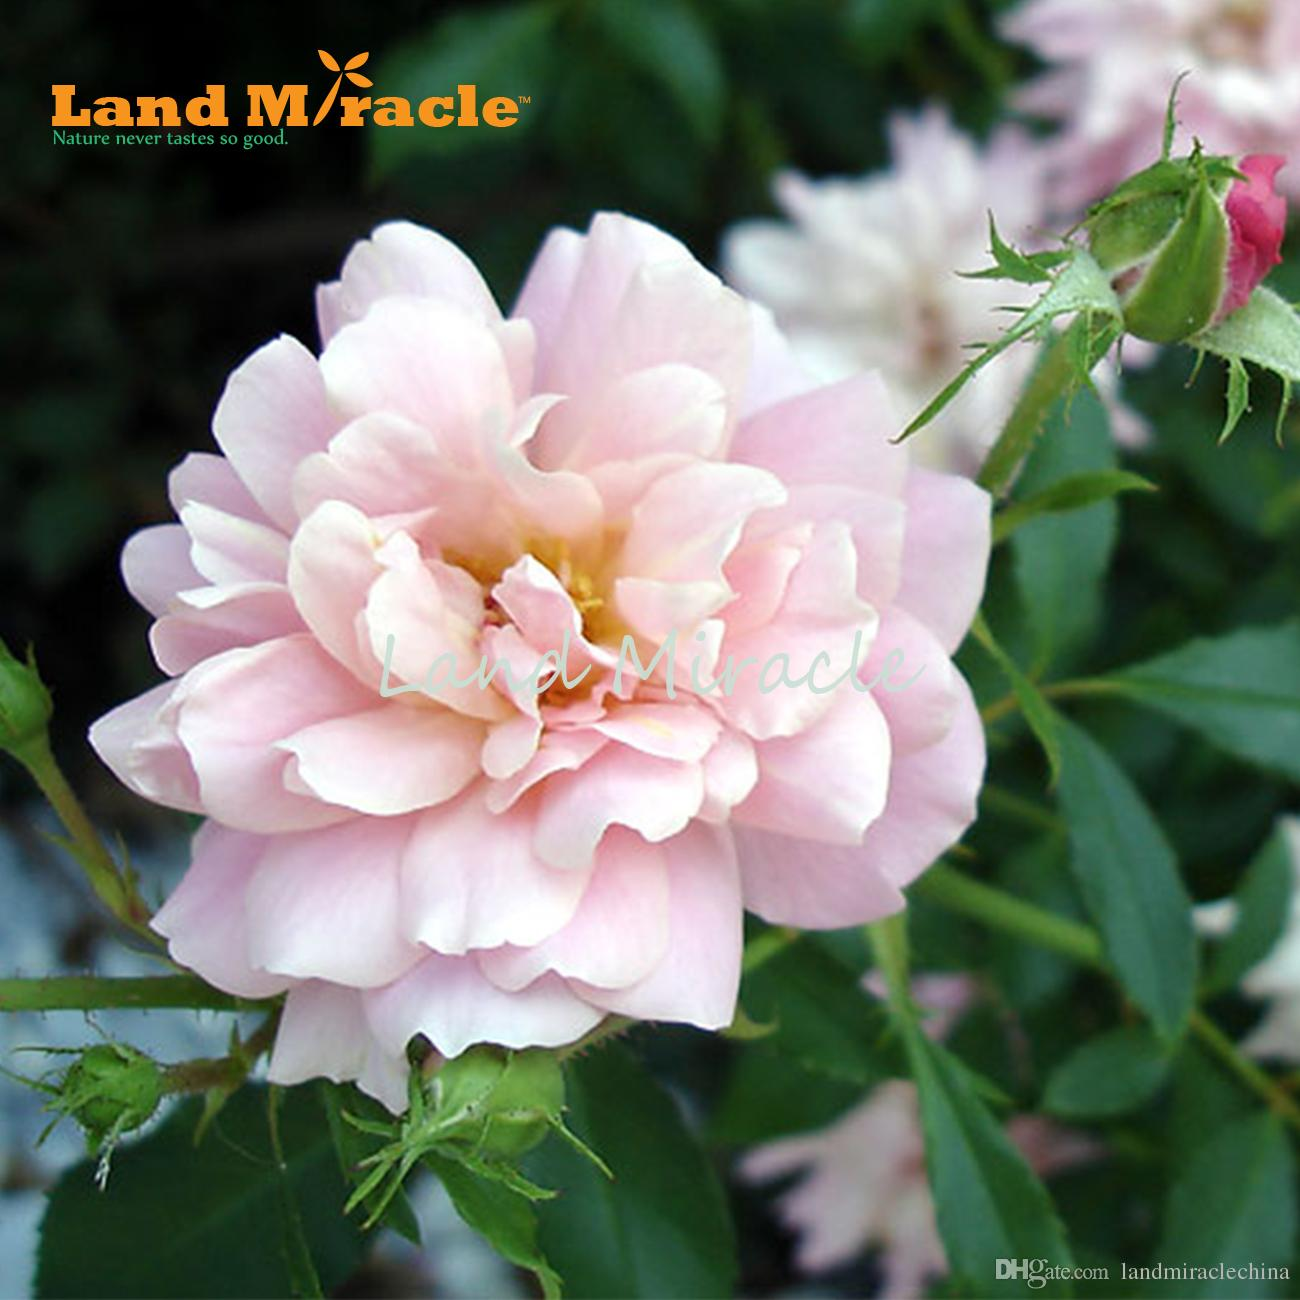 100 Seeds/pack, Home Garden Flower Seed Light Purple and White Exquisite Blooming * DH Rose Seeds*, New Rose Seeds Land Miracle